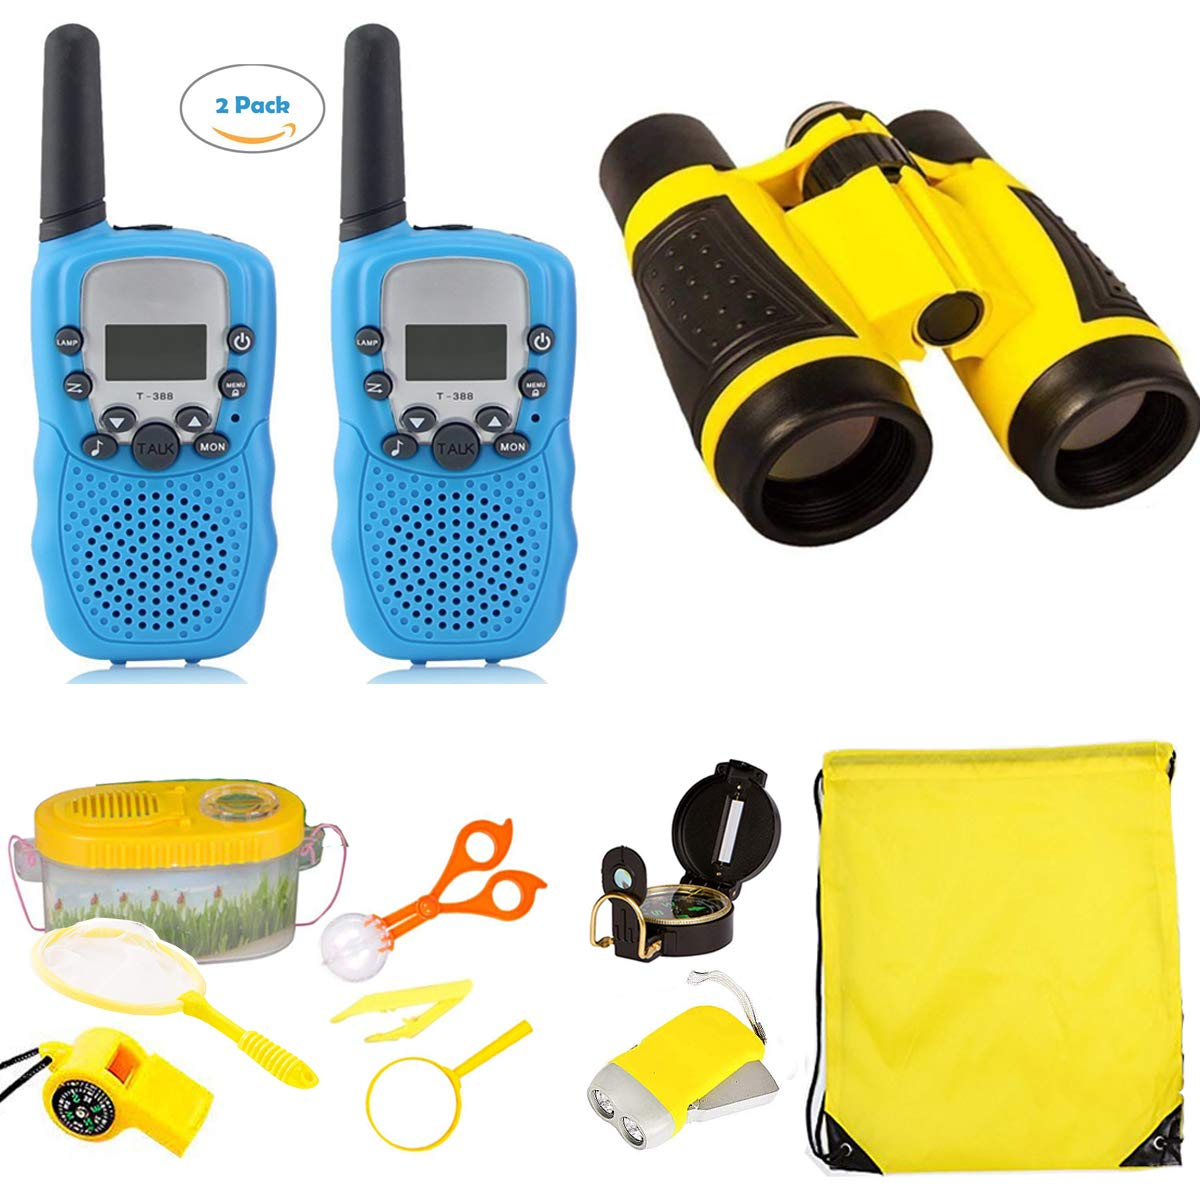 Outdoor Toys for Kids Explorer Kit, 2 Packs Walkie Talkies with 3KM Long Rang/ Binoculars for Kids/ Flashlight/ Compass/ Bug Catcher Kit for Kids Gift for Camping, Hiking, STEM Toys by BESWIN